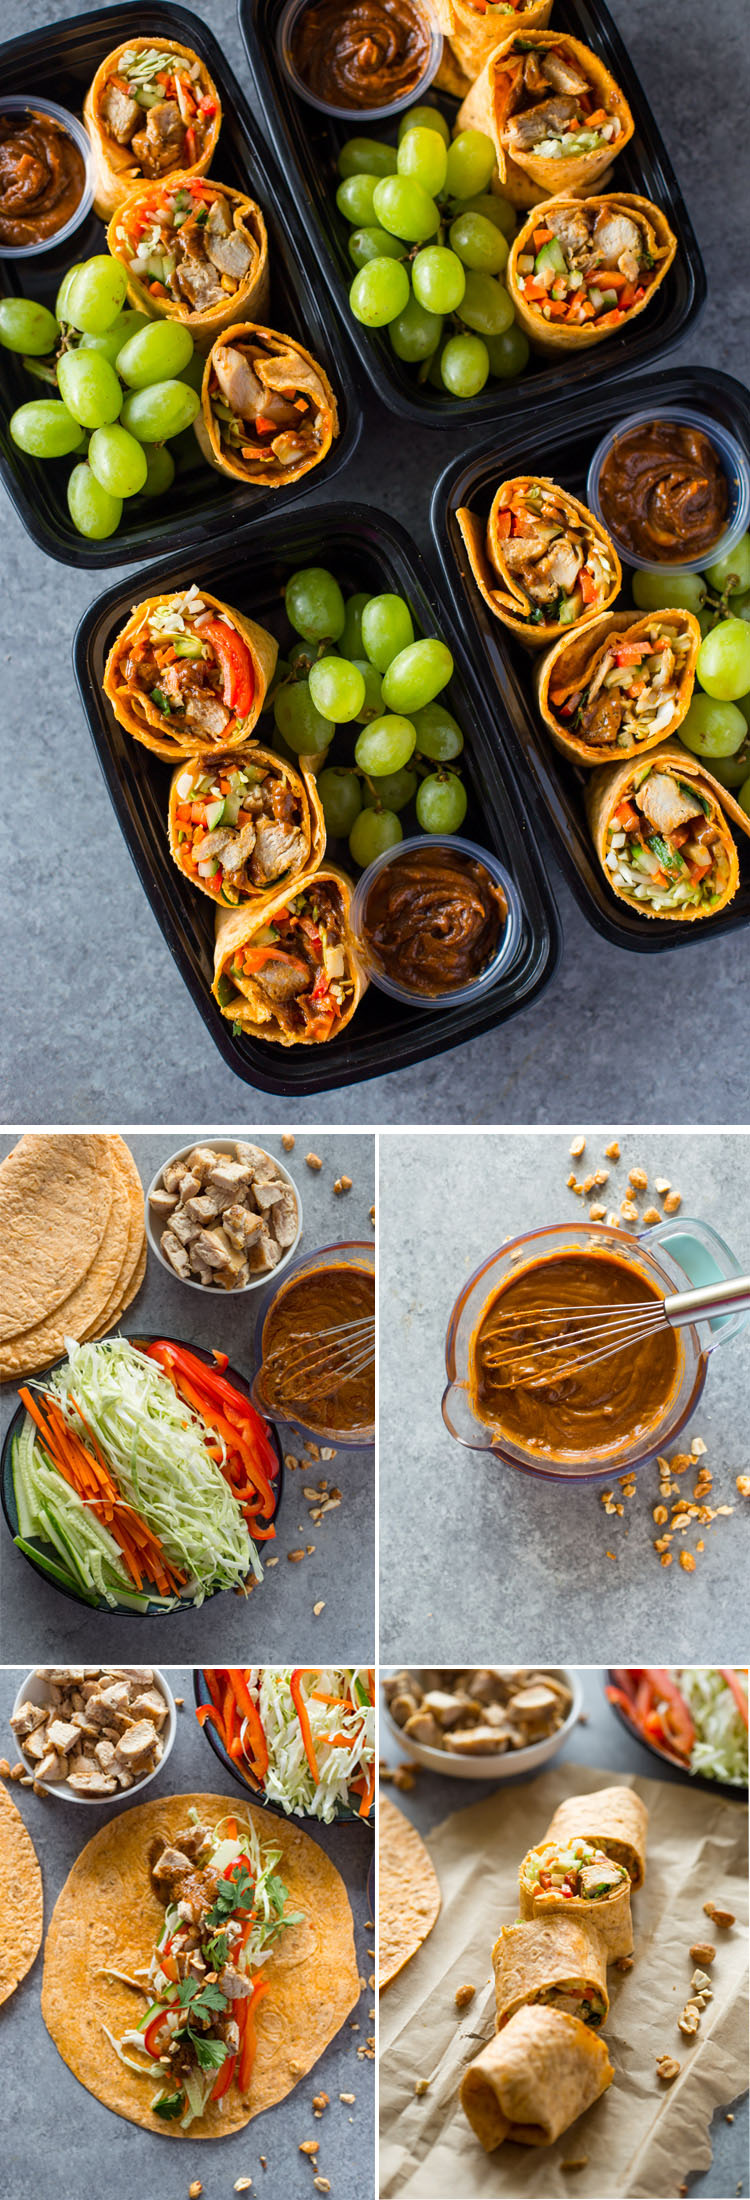 8 Healthy Lunches You Can Make In 10 Minutes Or Less That Arent Sandwiches